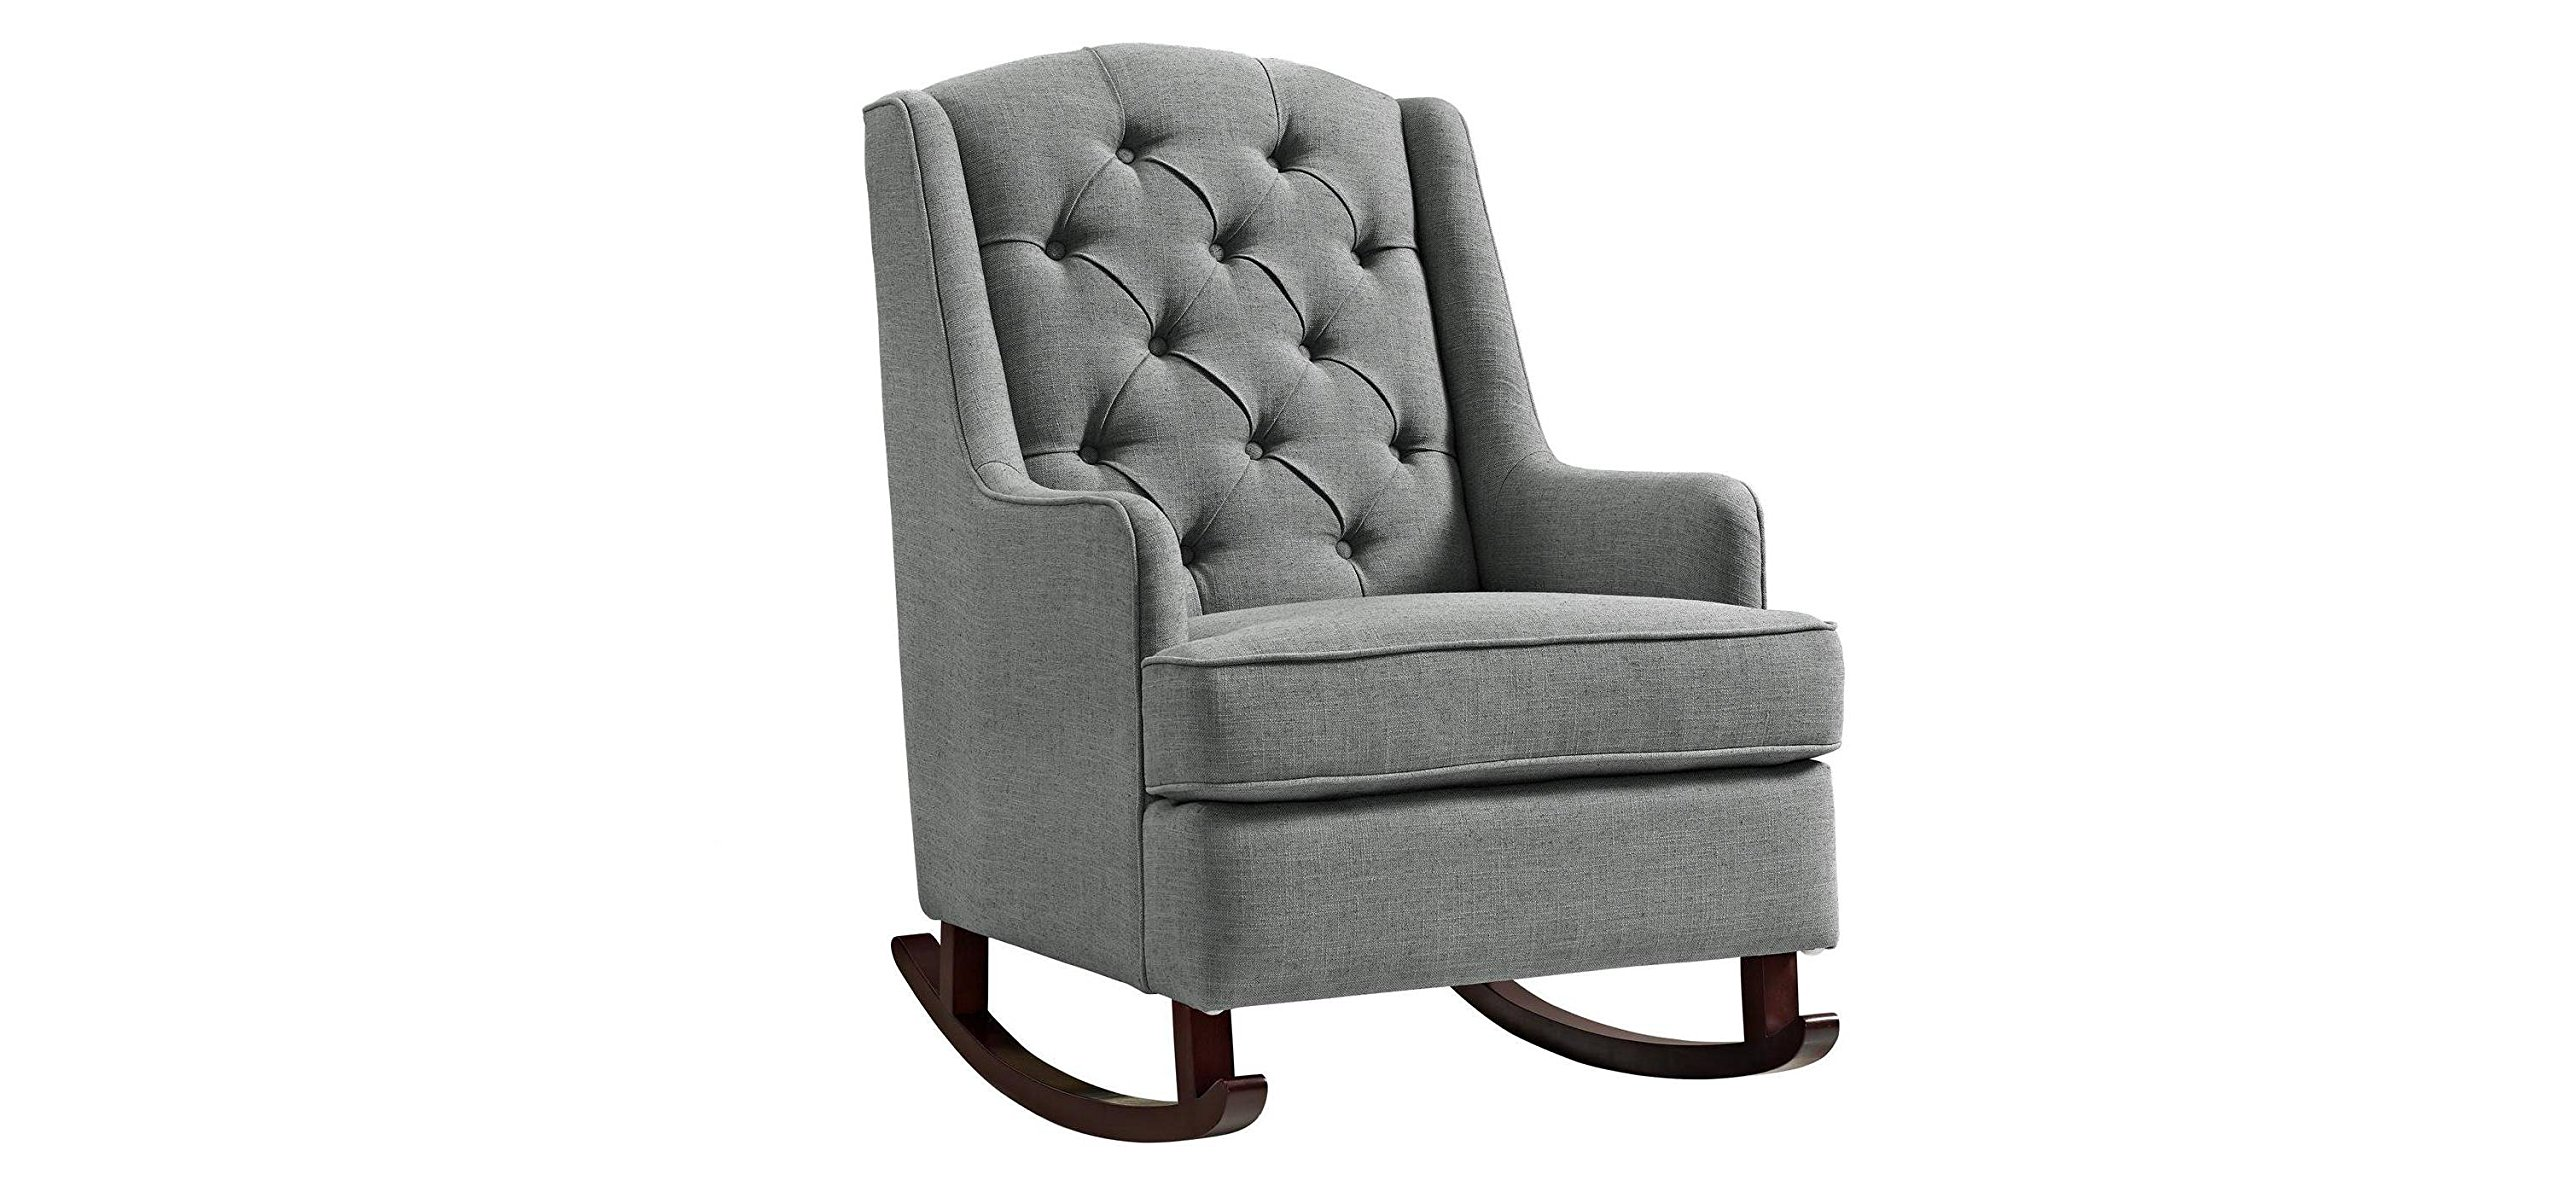 Baby Relax Zoe Tufted Rocking Chair- Gray